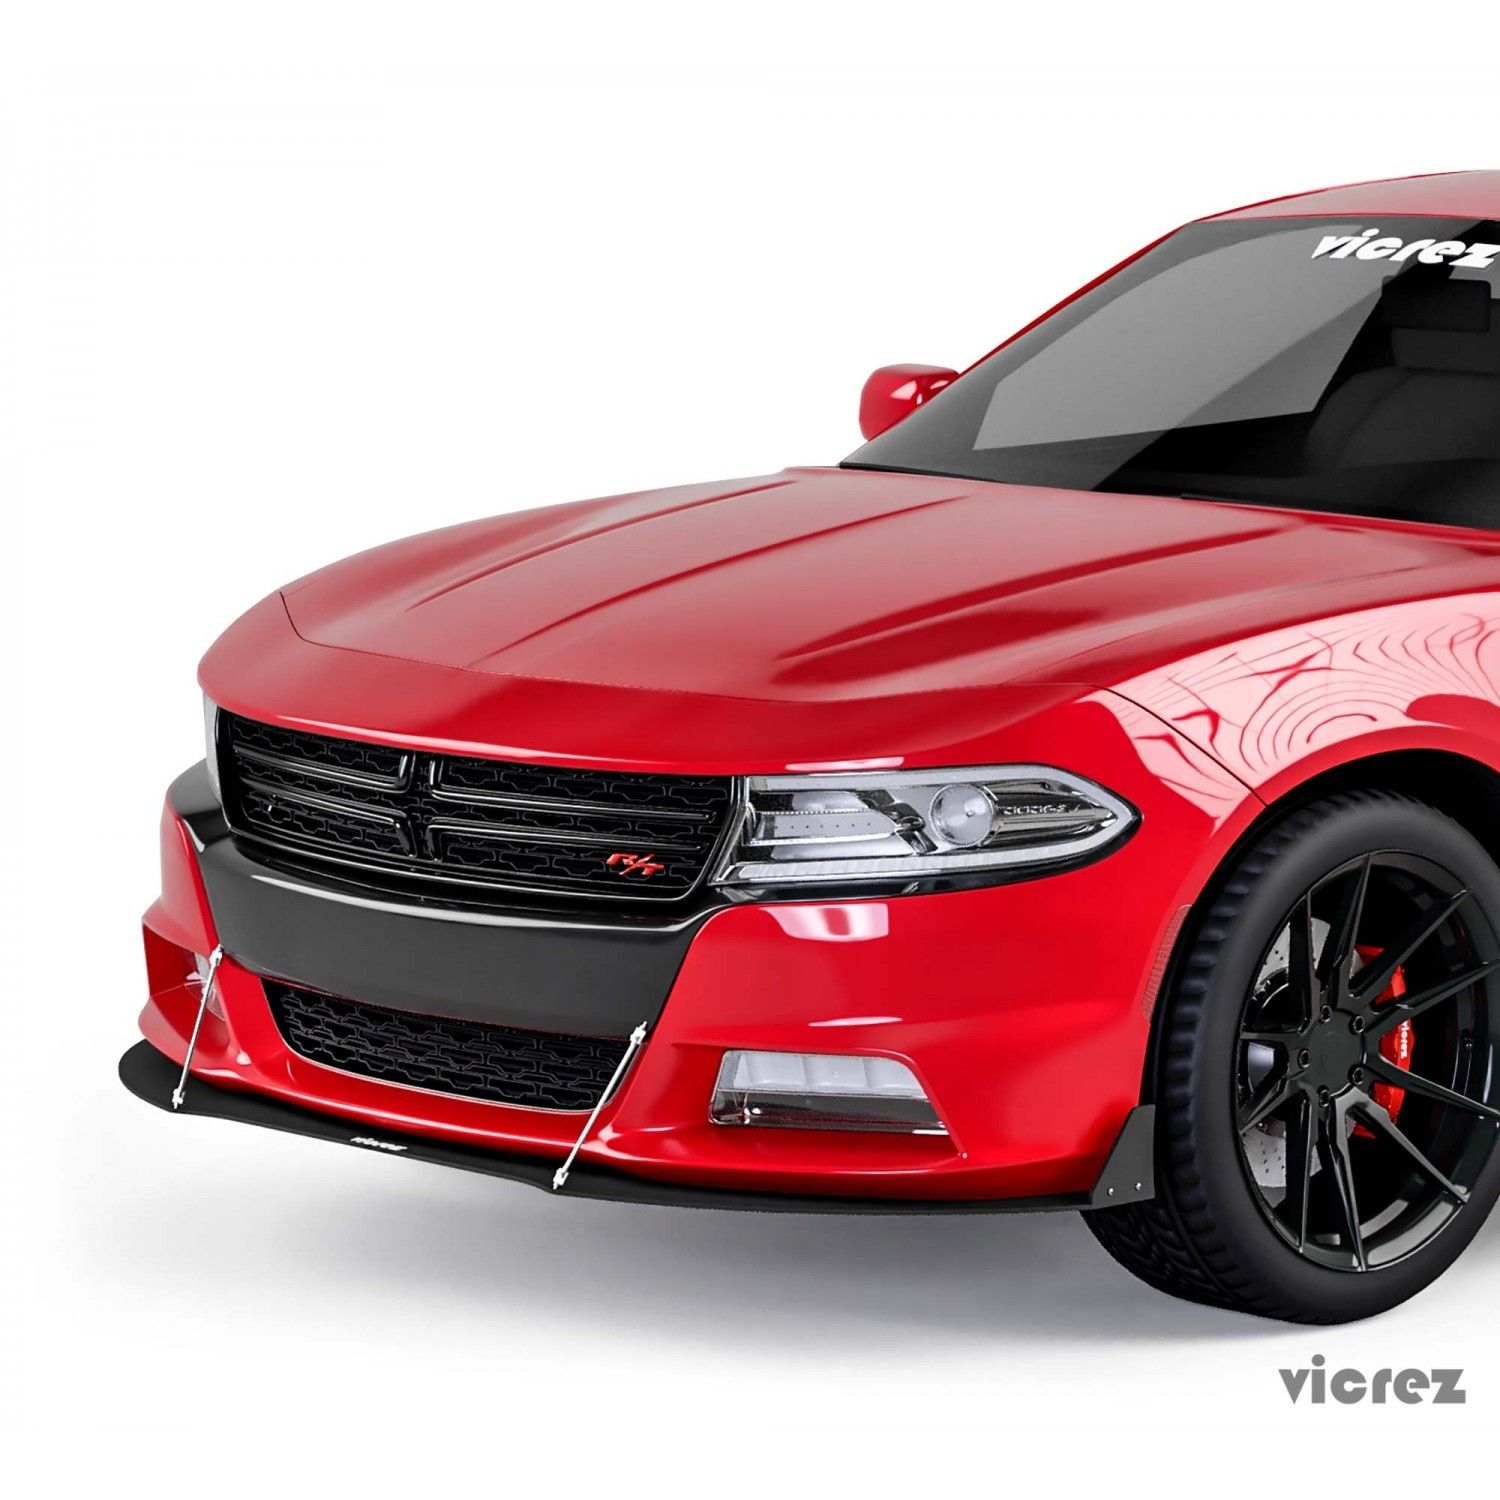 Dodge Charger Bumper The 2 Secrets About Dodge Charger Bumper Only A Handful Of People Know In 2021 Dodge Charger 2015 Dodge Charger Charger Sxt